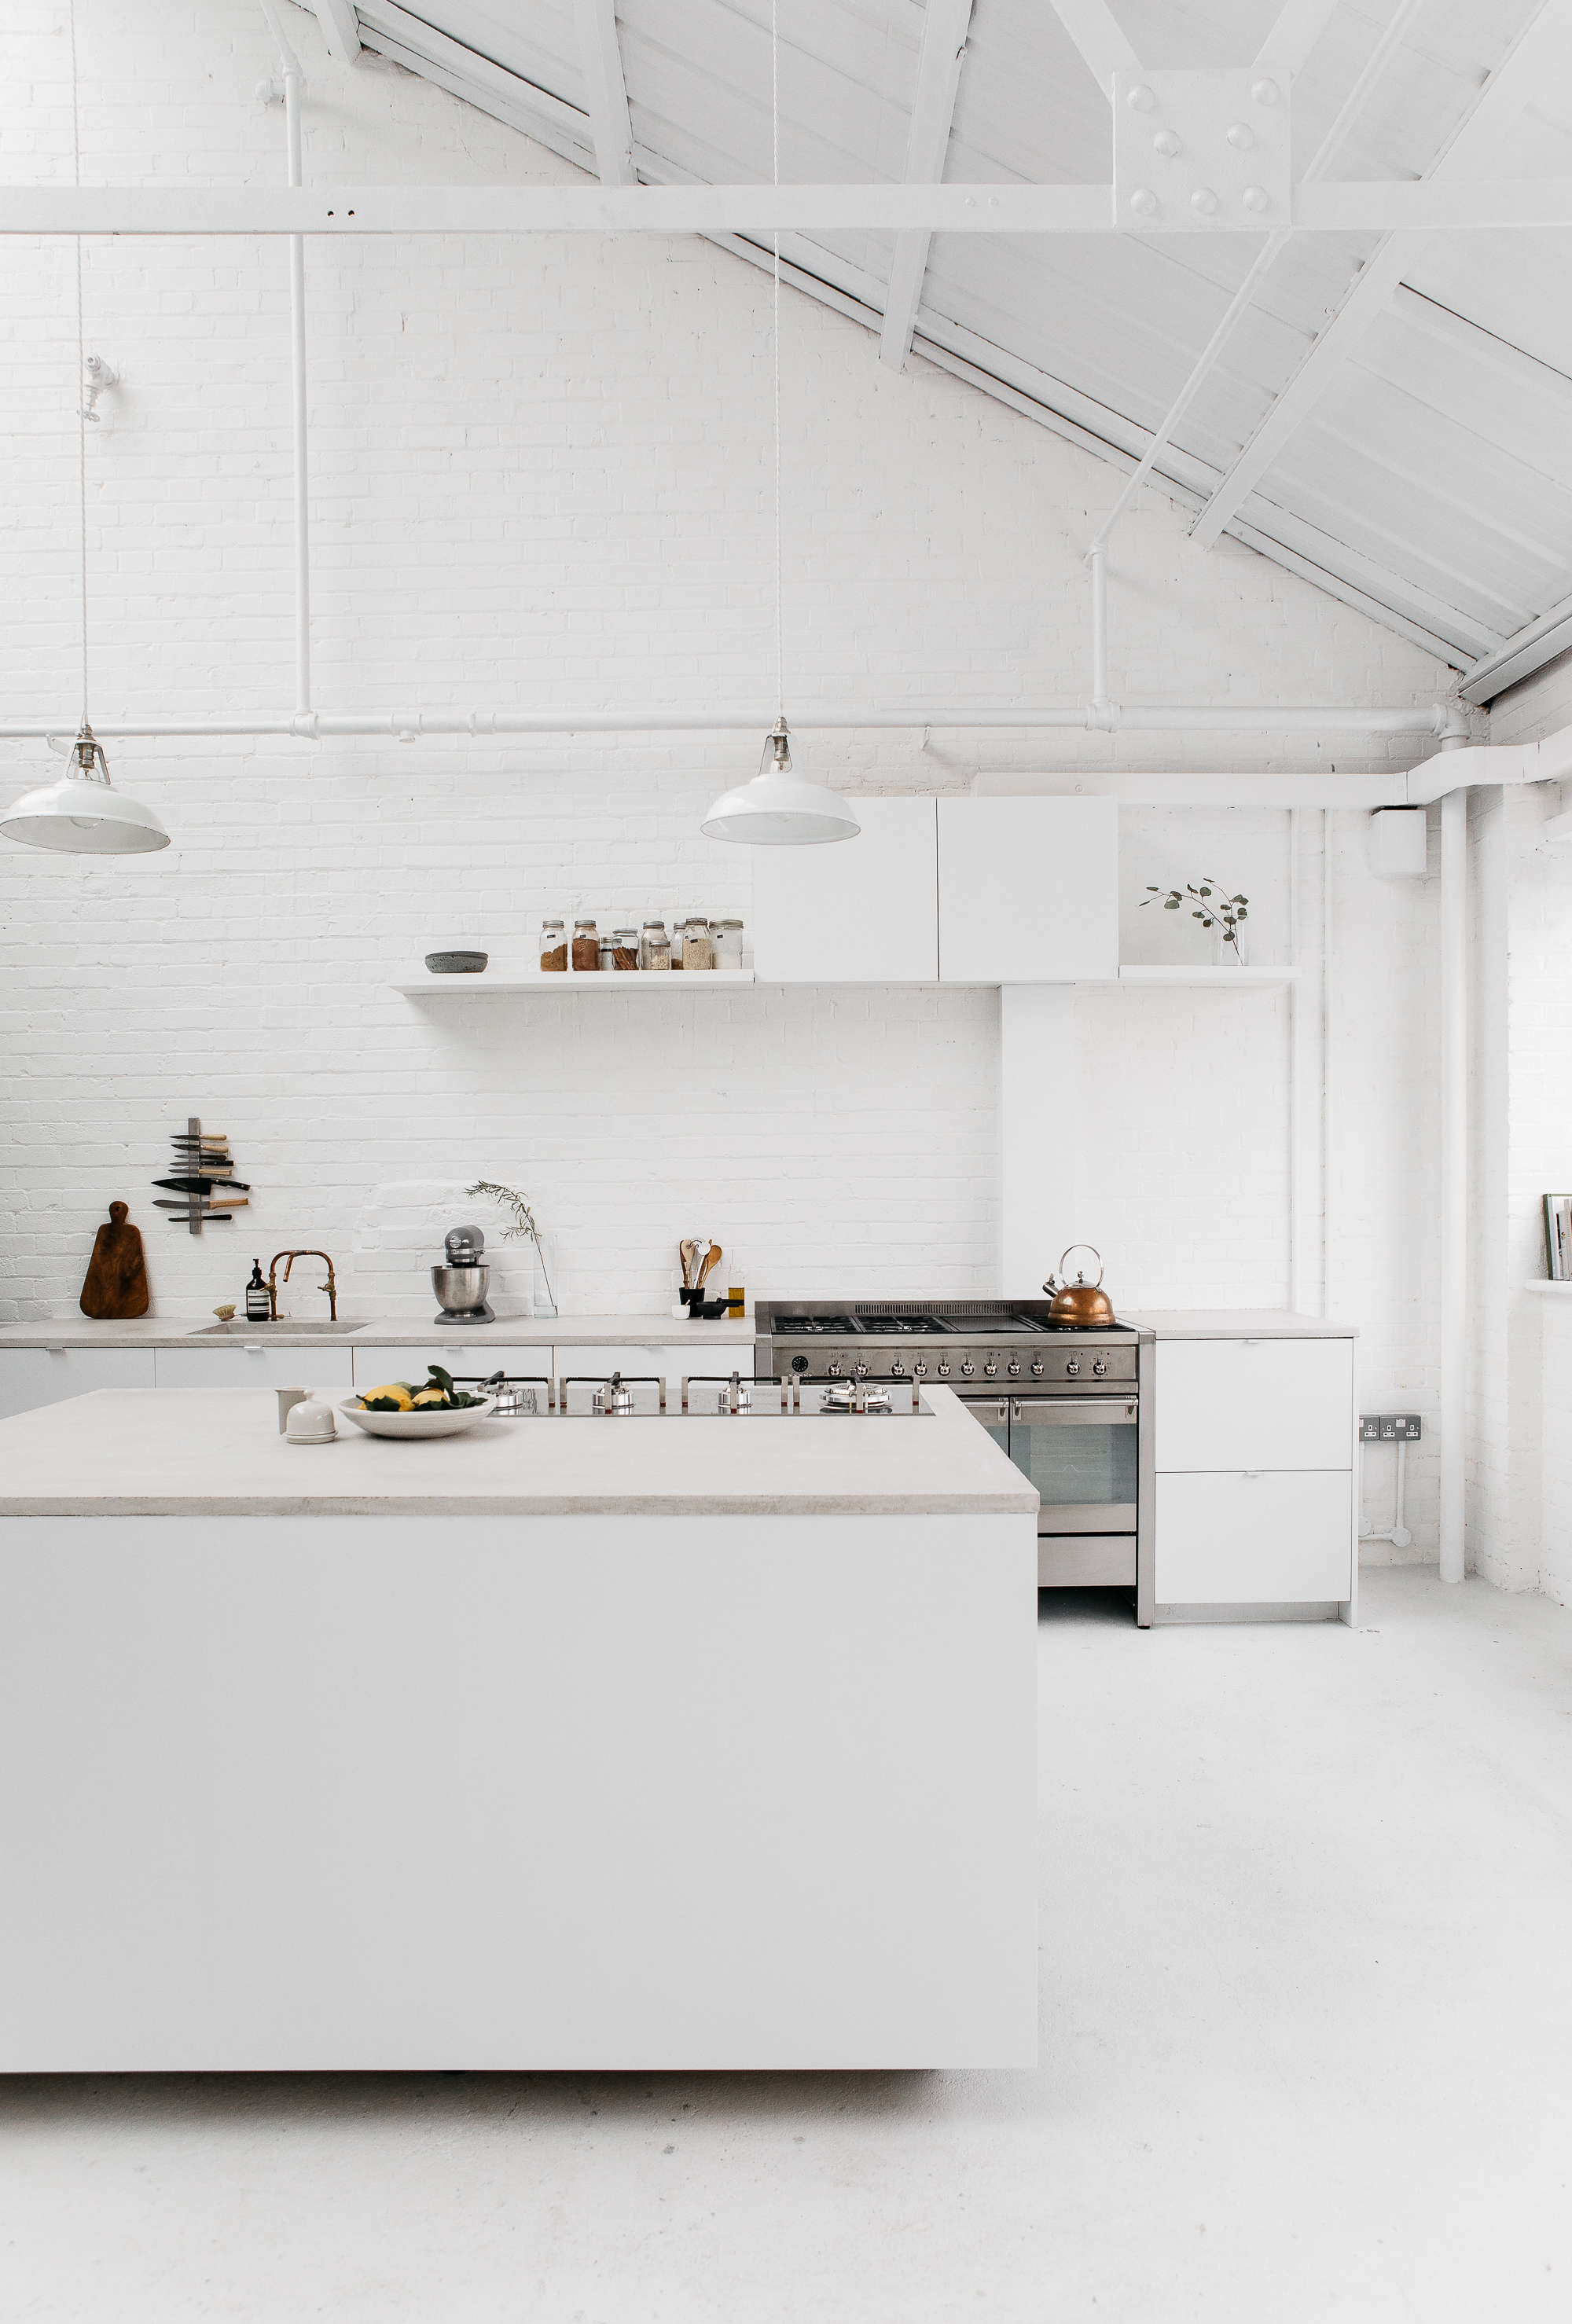 stylist and luxury supply lines for kitchen sink. Rye London a Scandi inflected all white kitchen in designed for use  as Kitchen of the Week An Artful Ikea Hack by Two